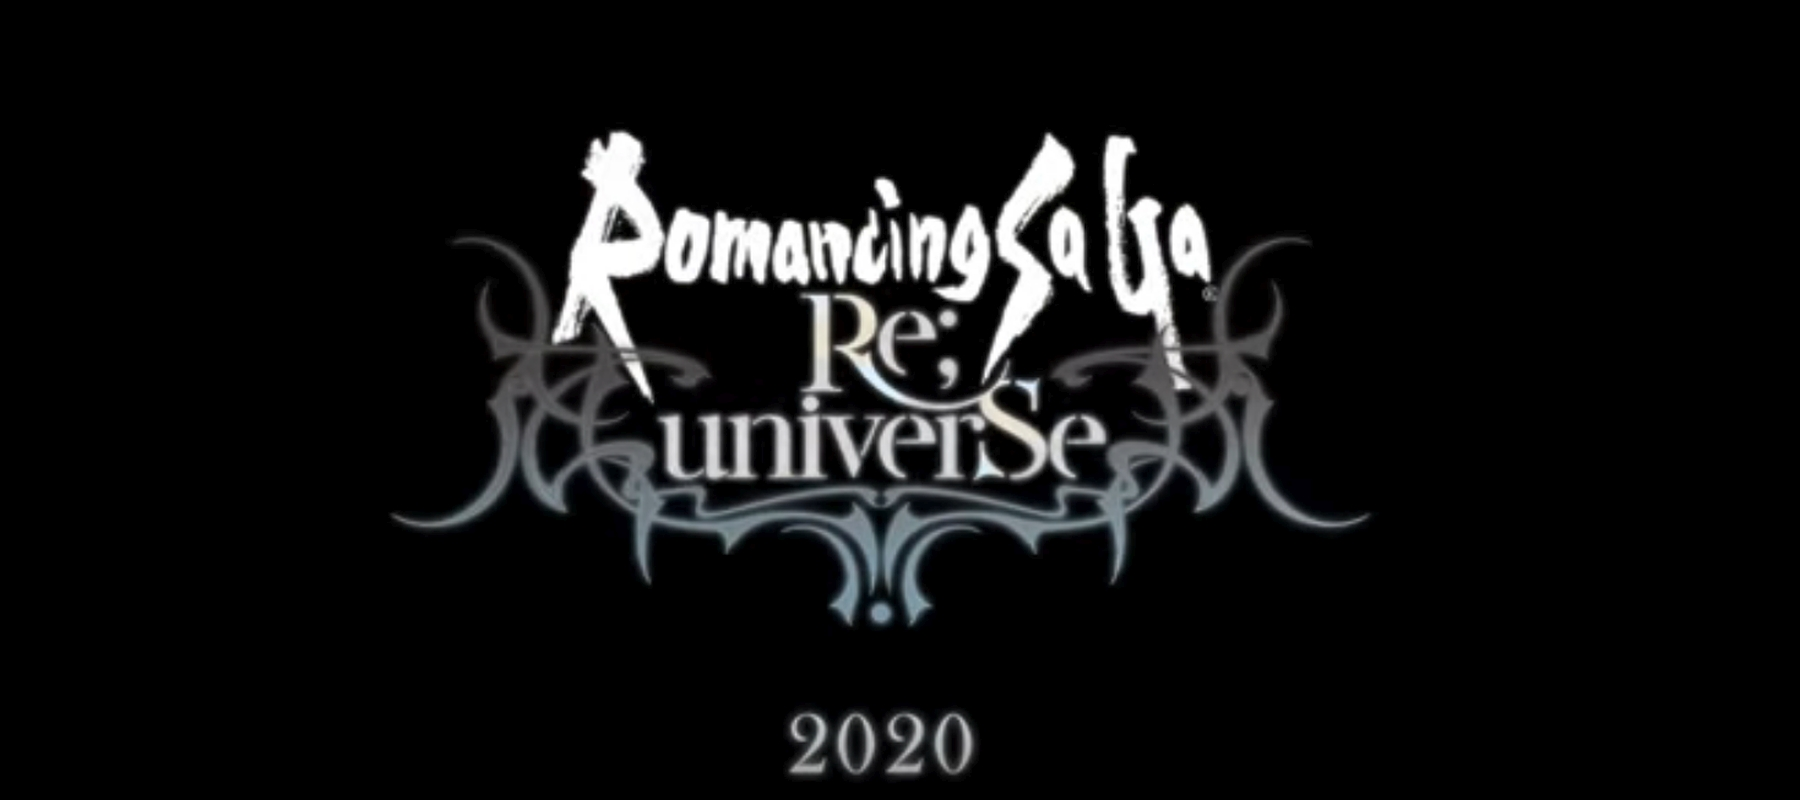 Square Enix's Romancing SaGa Re;universe Now Available For Pre-Registration